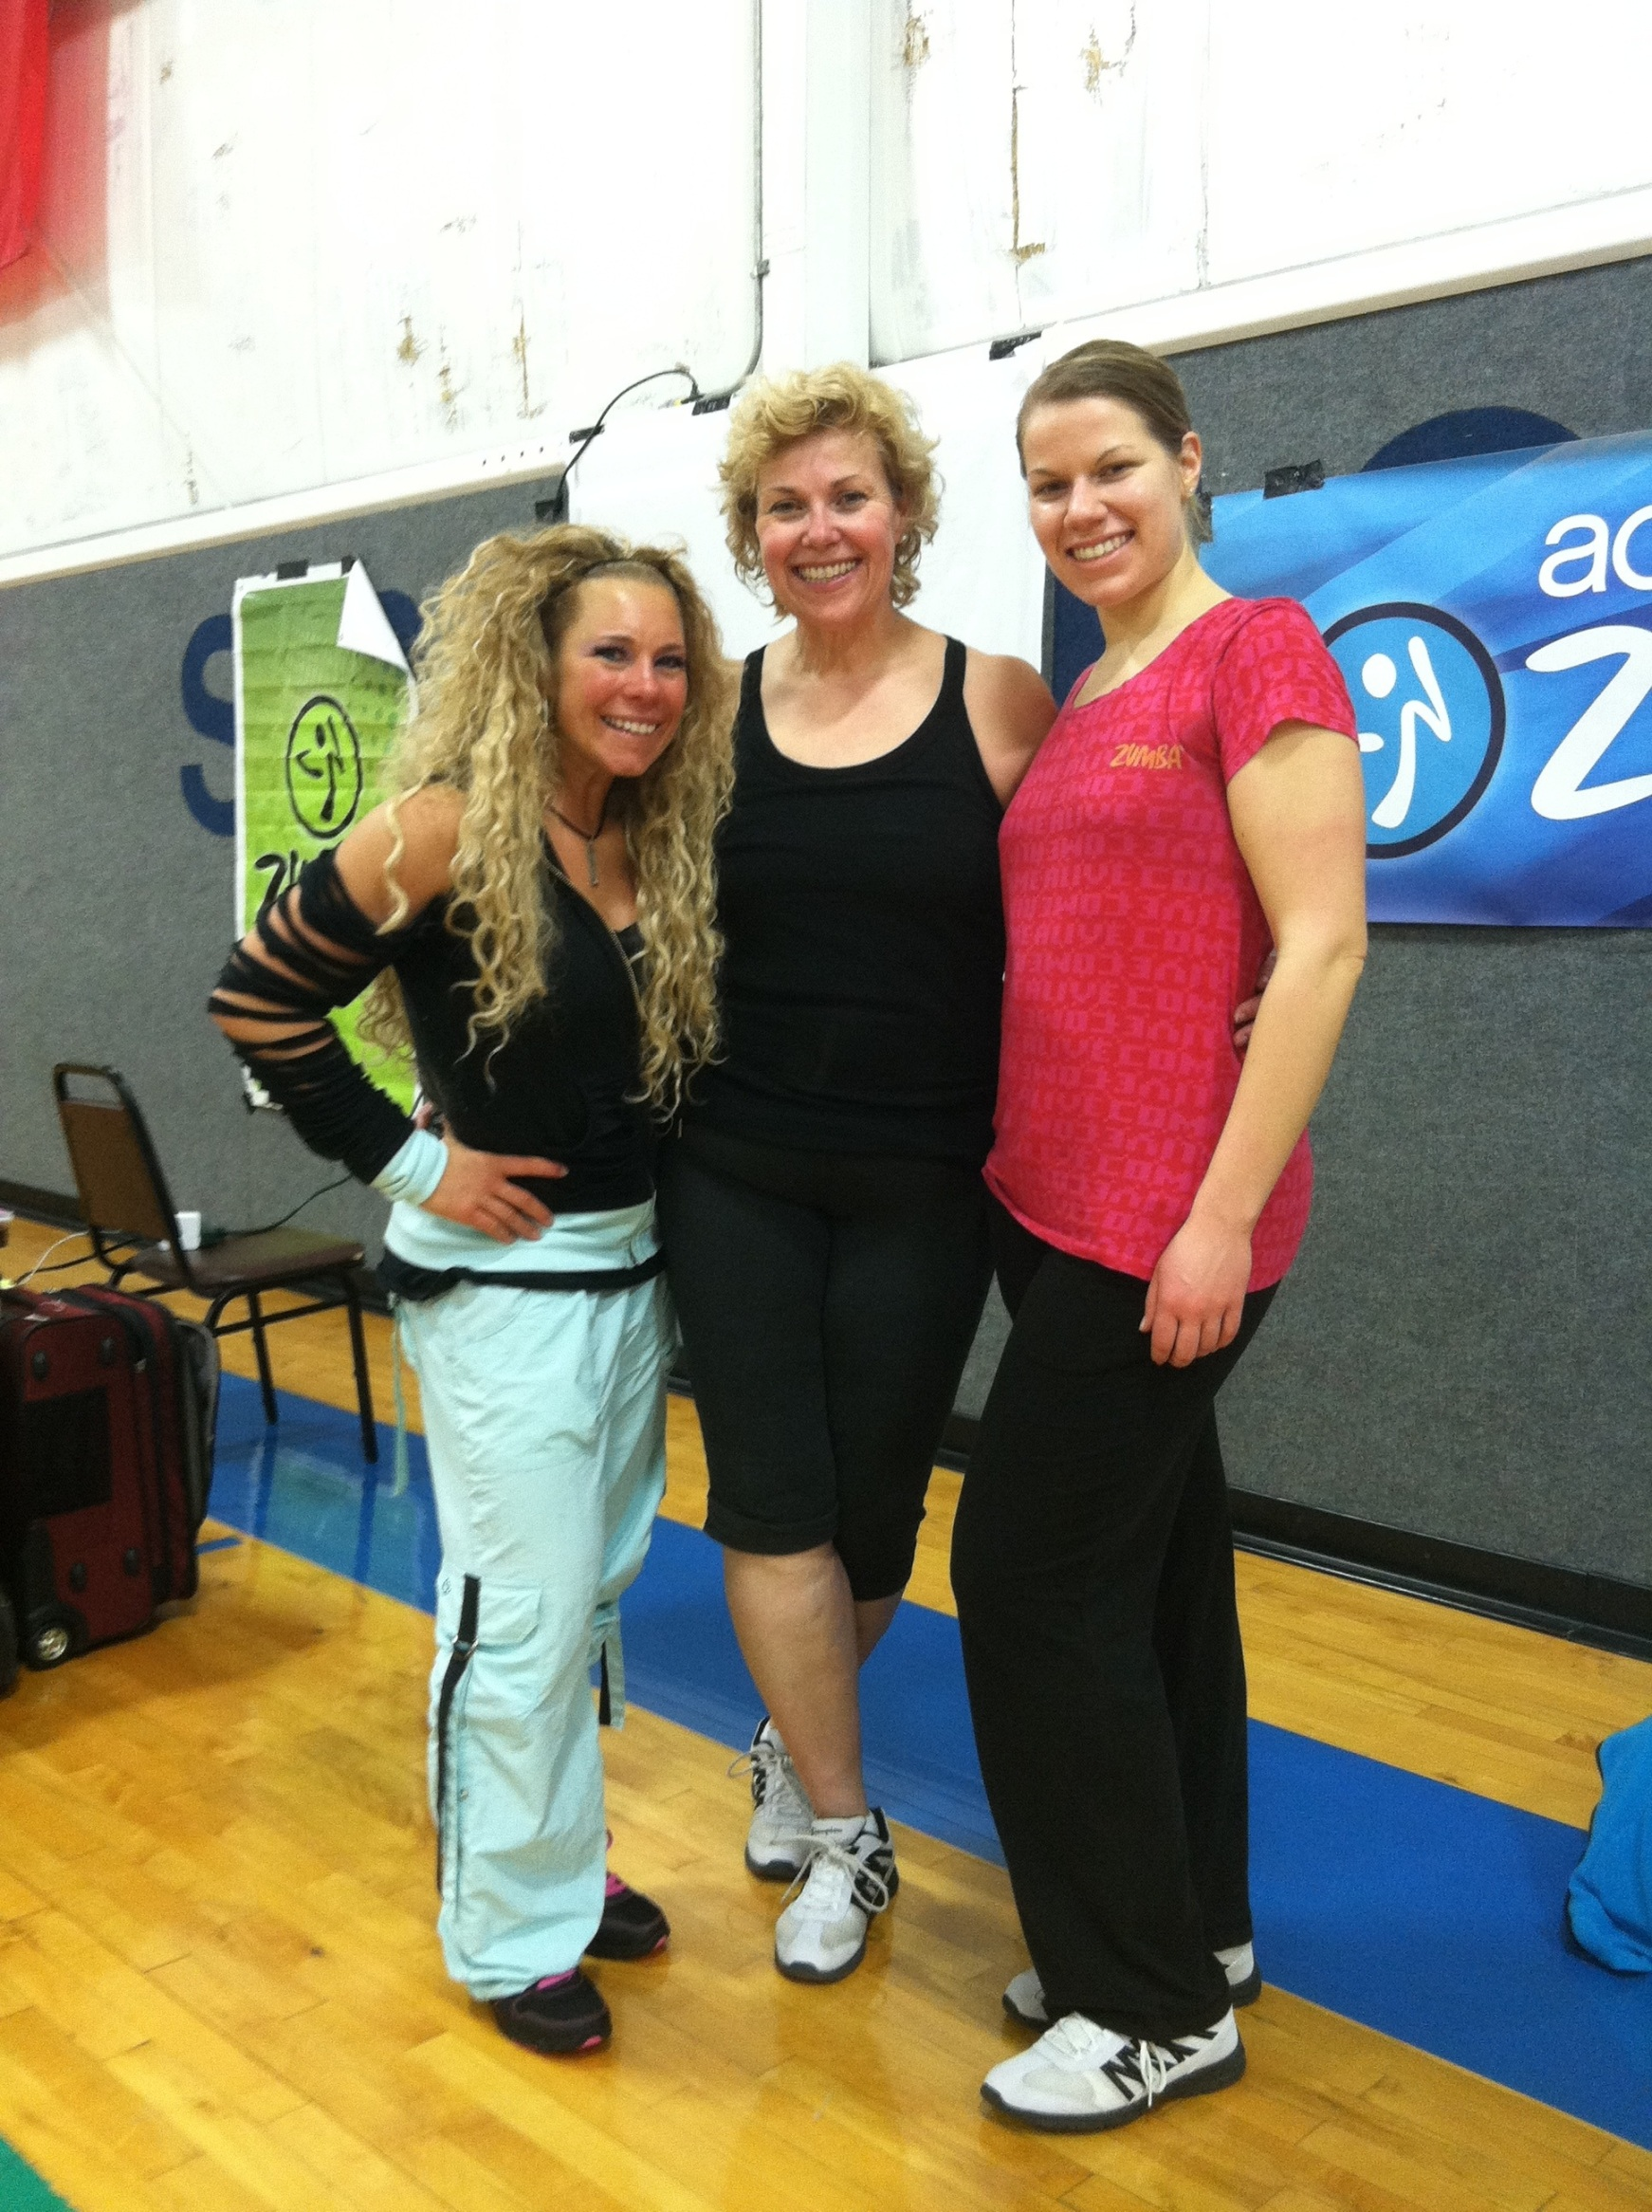 Zumba Licensing with our trainer